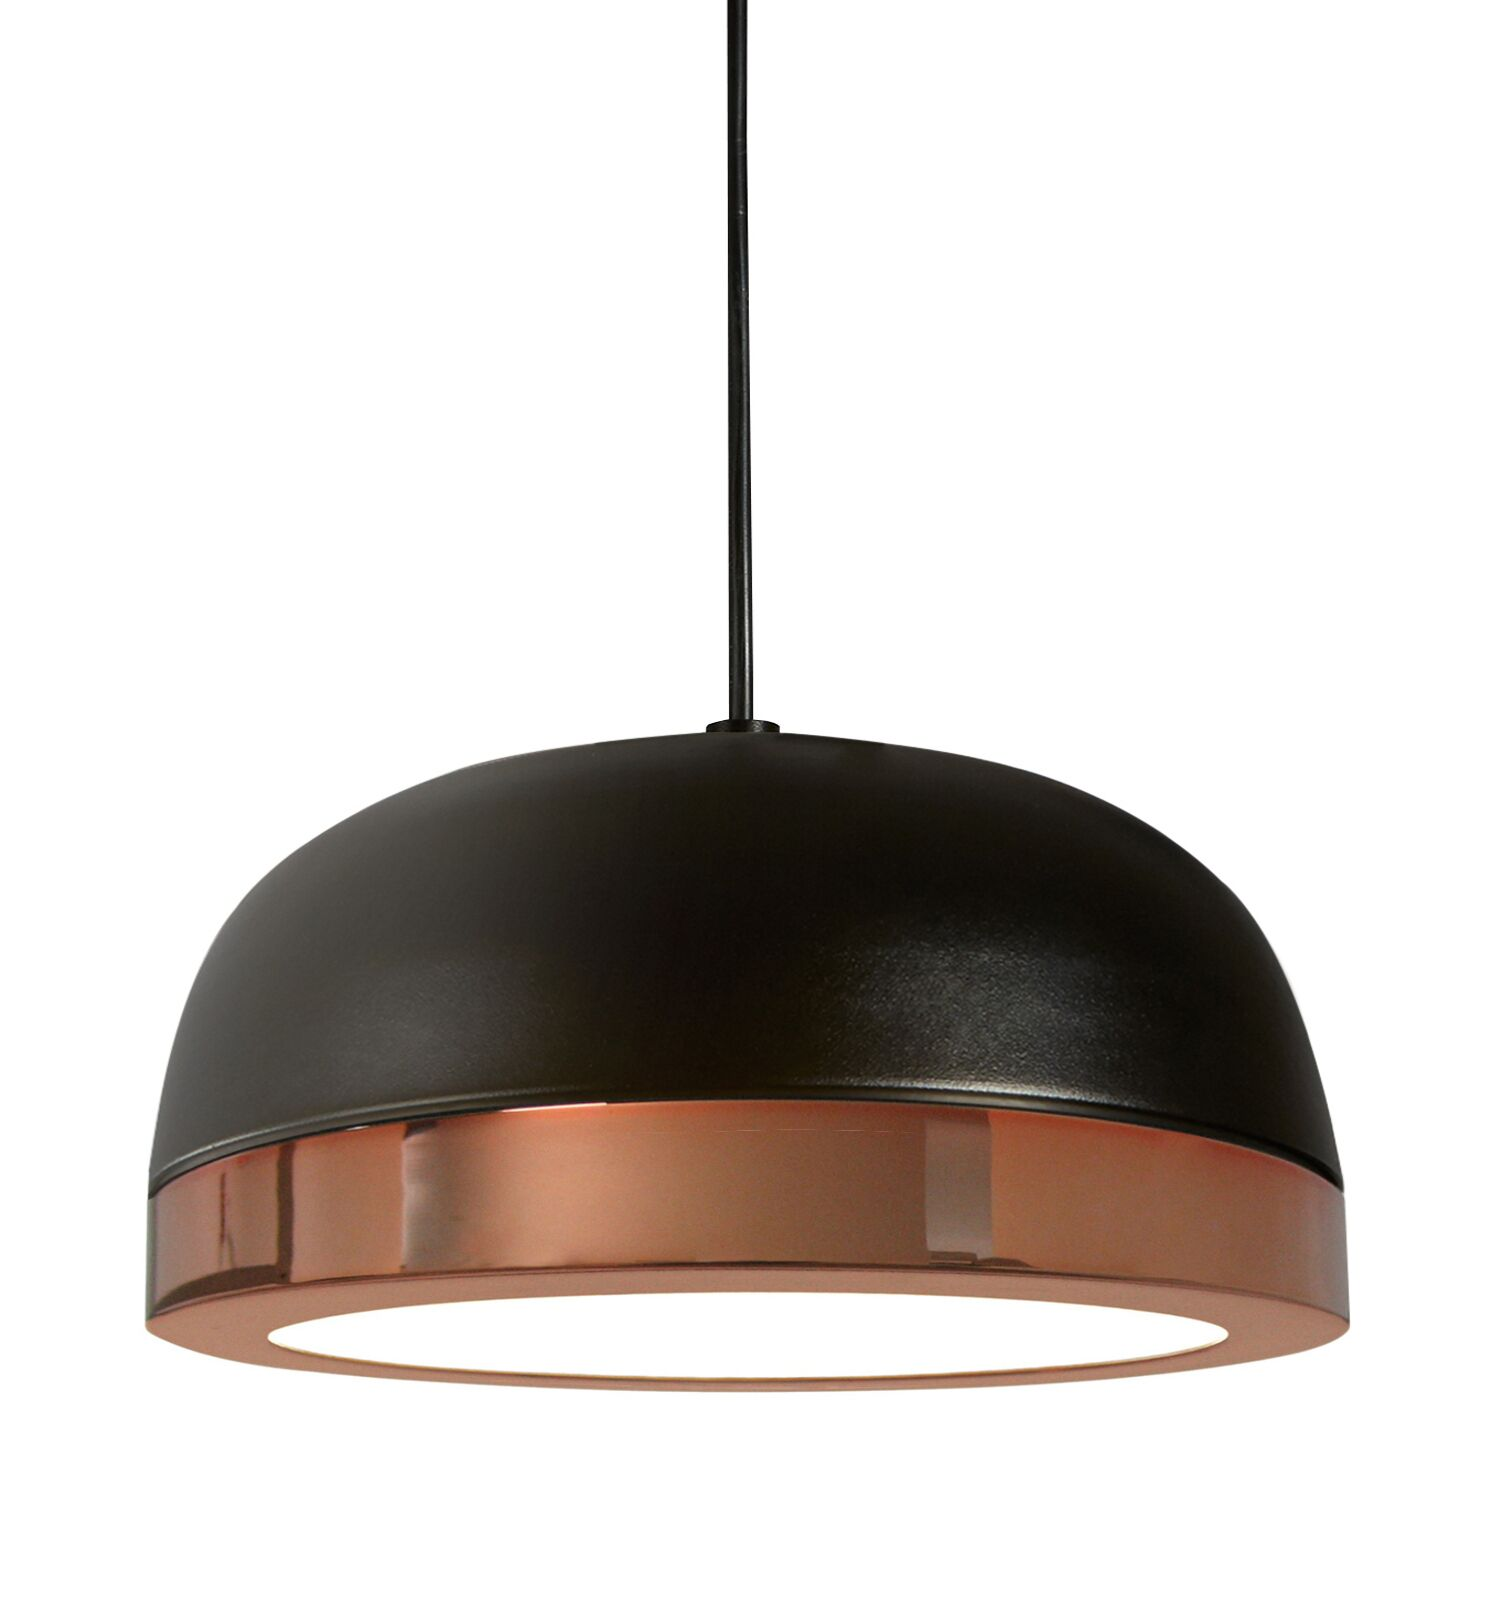 Tooy Molly 1-Light  LED Dome Pendant Shade Color: Black/Copper, Size: 6.5